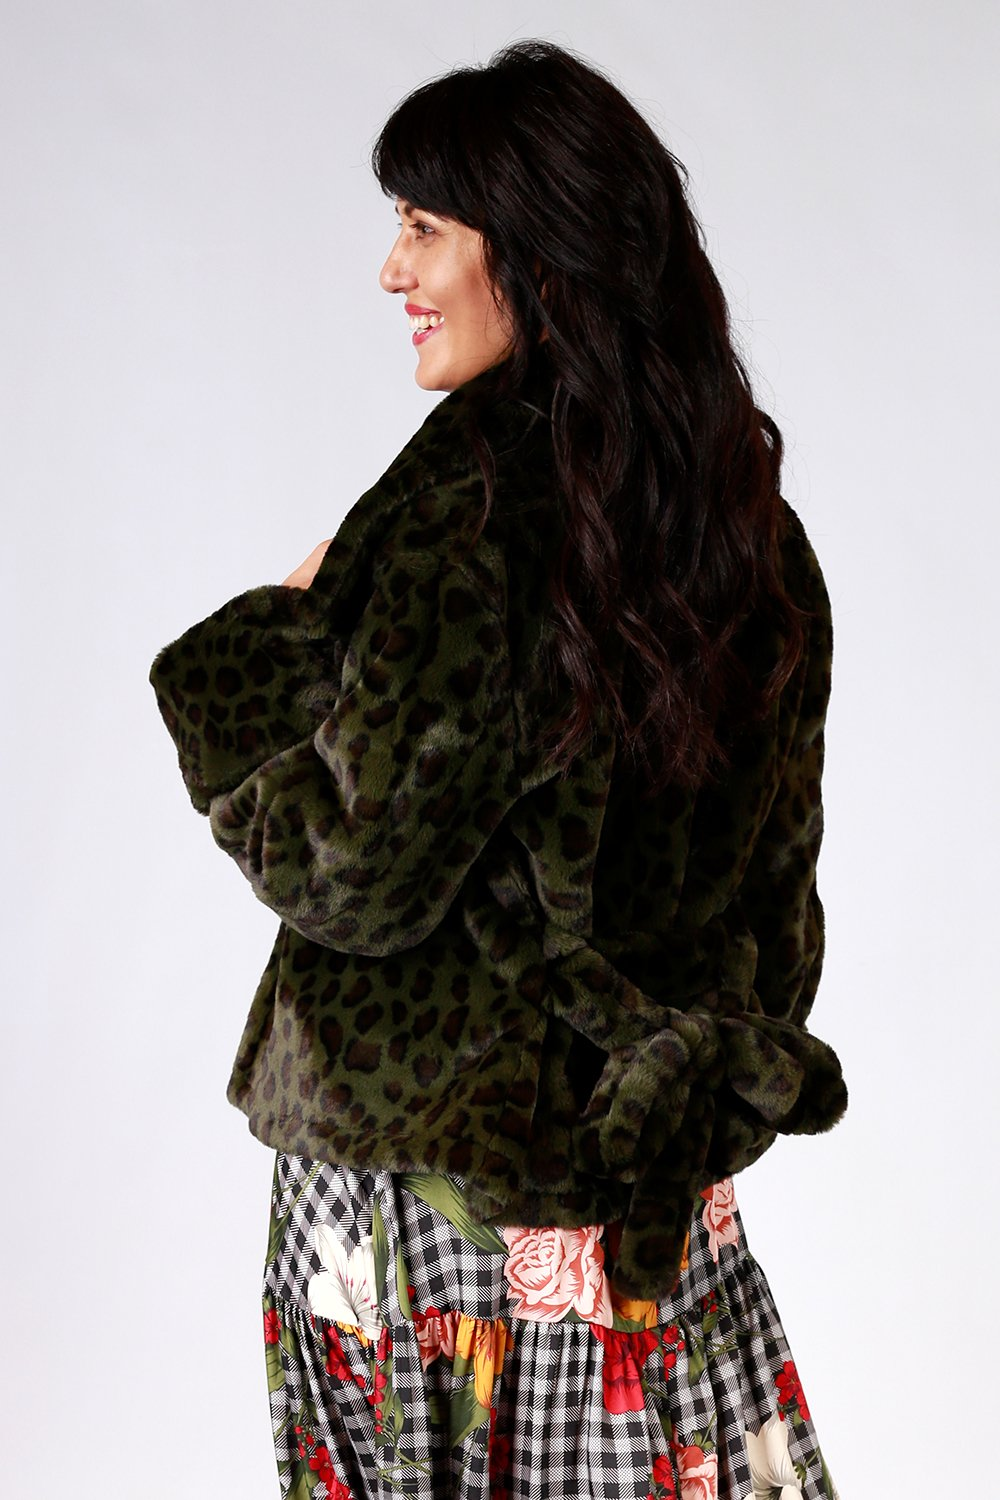 Not Too Furry Jacket | Gypsy Fare AW20 | Annah Stretton | Annah Stretton Fashion | Designer Fashion | Leopard Fur Coat | Faux Fur Coat | Winter Coat | Leopard Winter Coat | Green Winter Coat | Designer Fur Coat | Annah Stretton NZ | Designer Fashion NZ